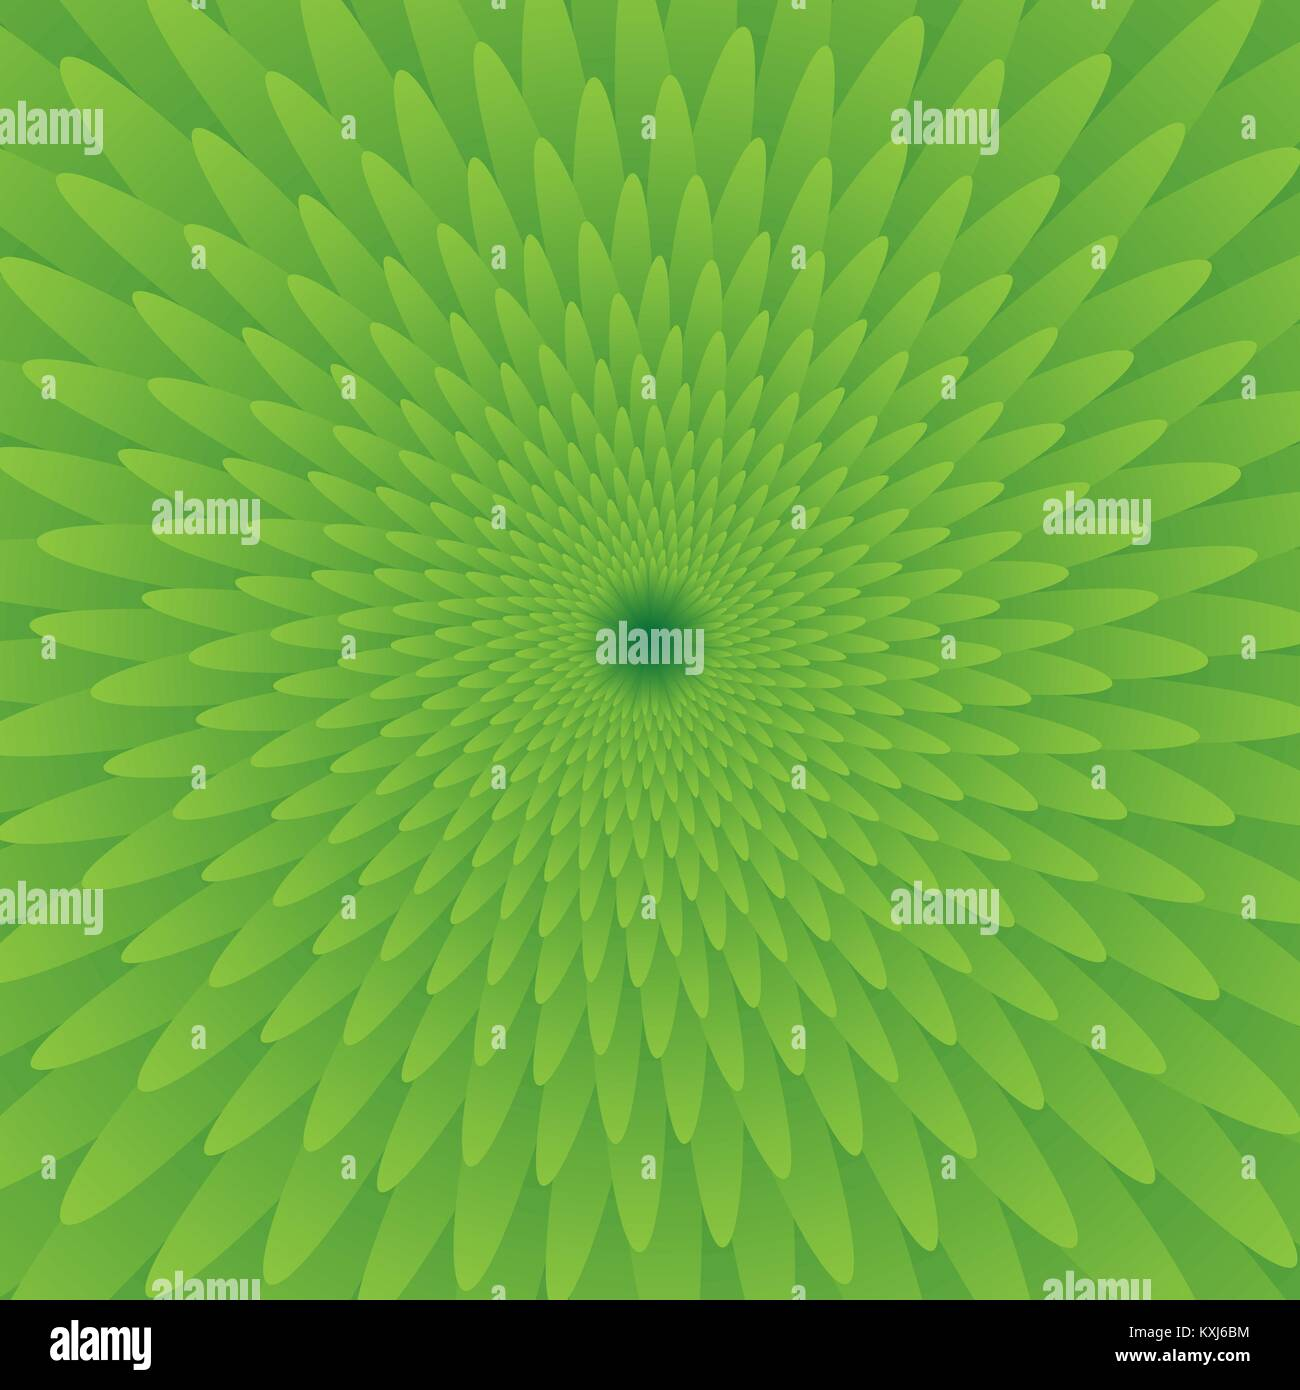 Abstract green optical illusion, creative vector background with gradient petals, movement simulation Stock Vector